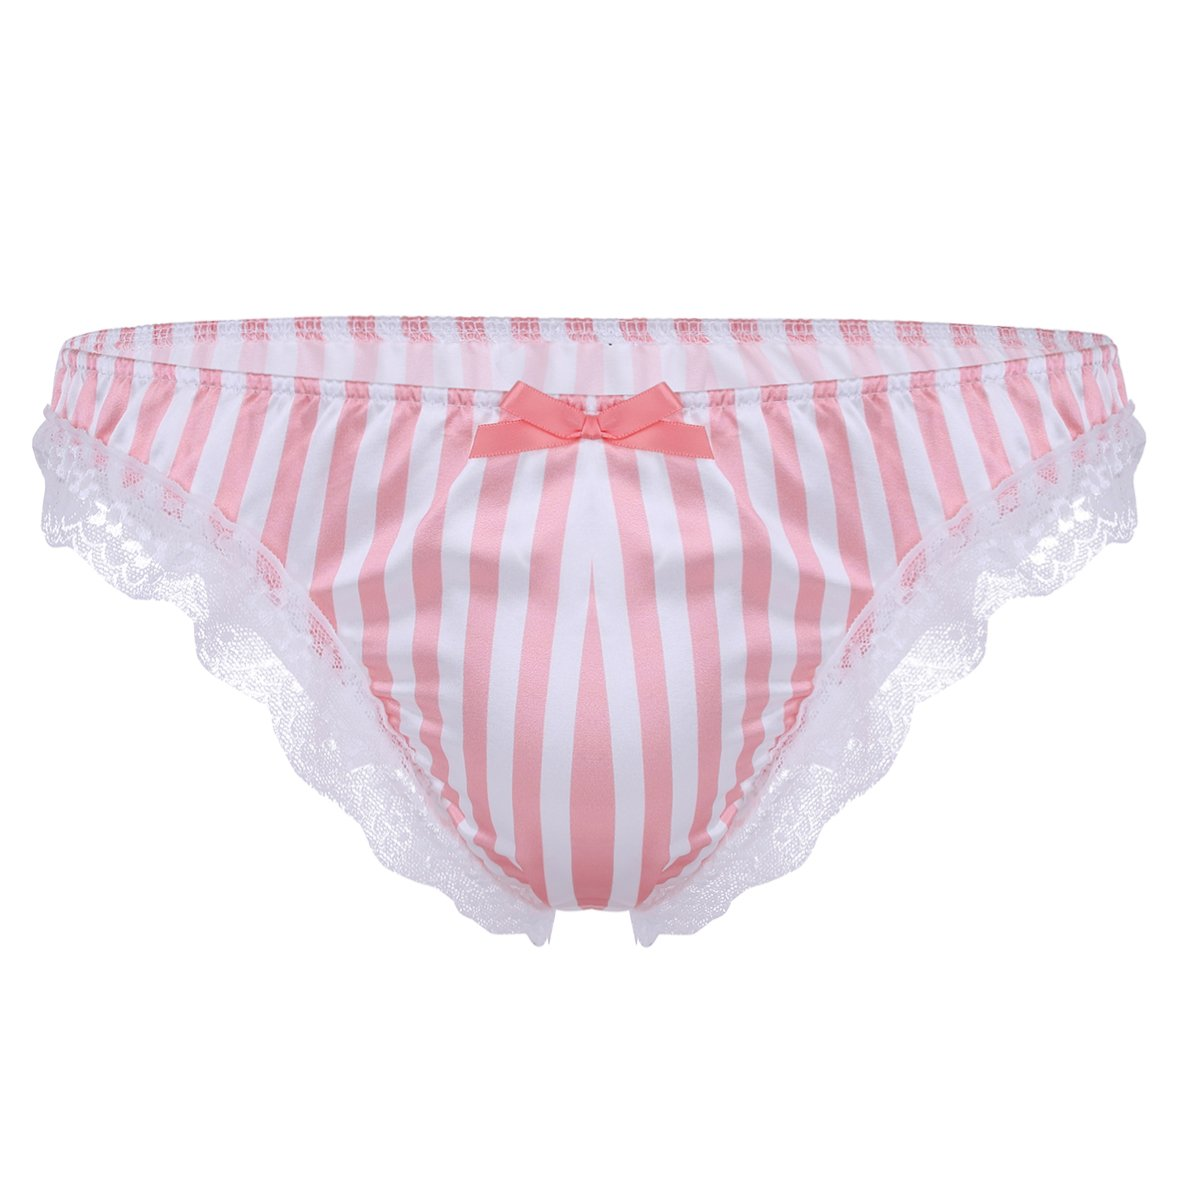 cf24eaeded Galleon - MSemis Men s Silk Satin Ruffle Frilly Sissy Bugle Pouch Bikini  Briefs Thongs Underwear Crossdress Panties Pink Stripes Medium (Waist  27.5